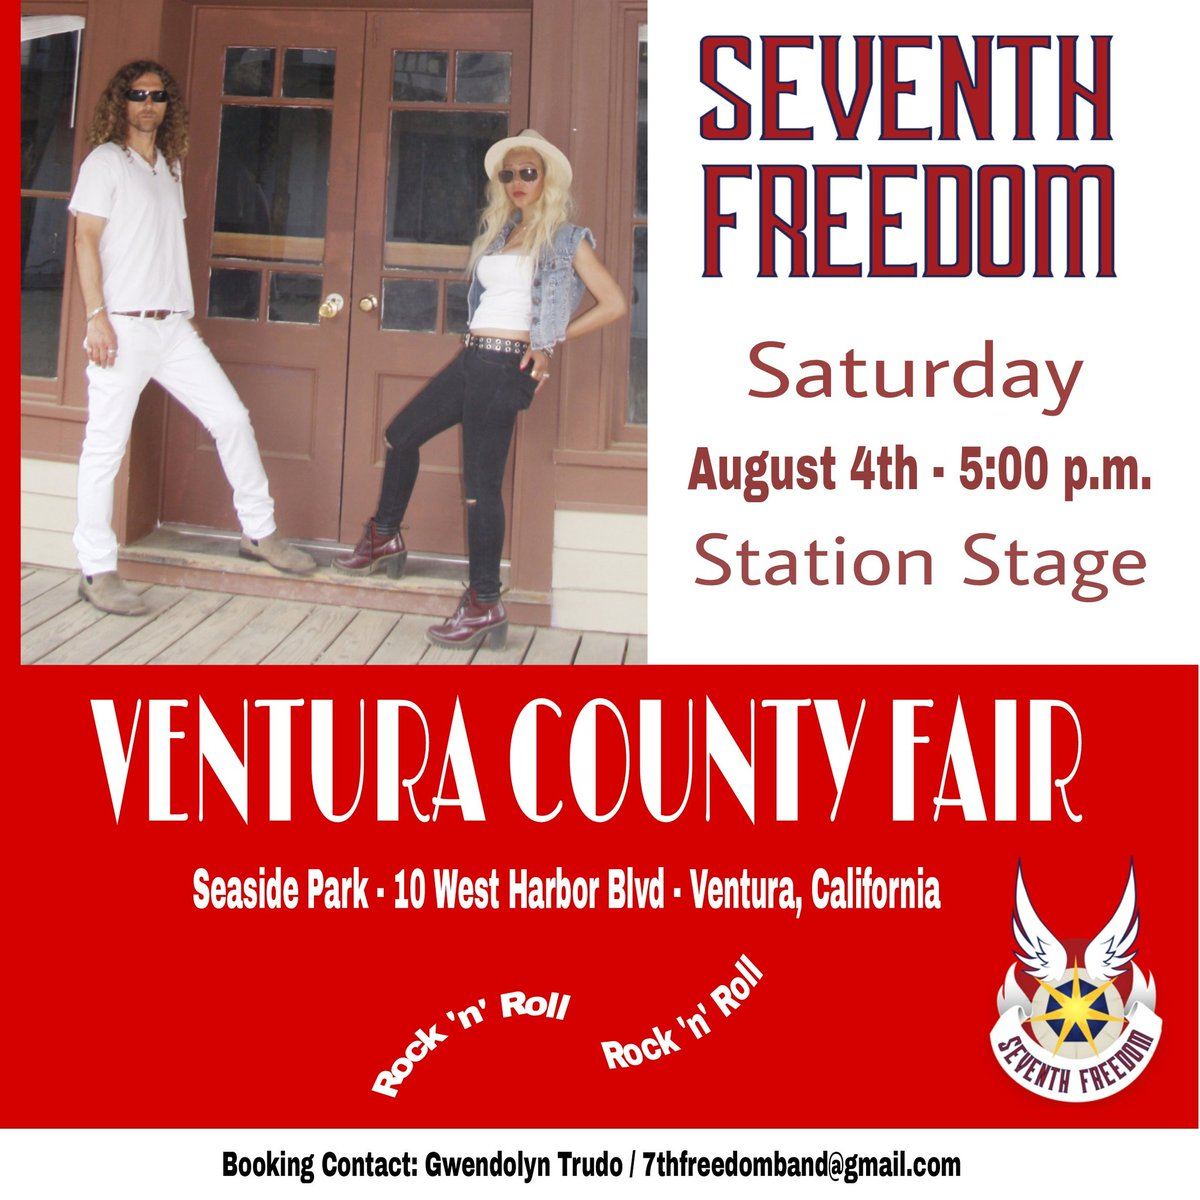 Seventh Freedom's photo on ventura